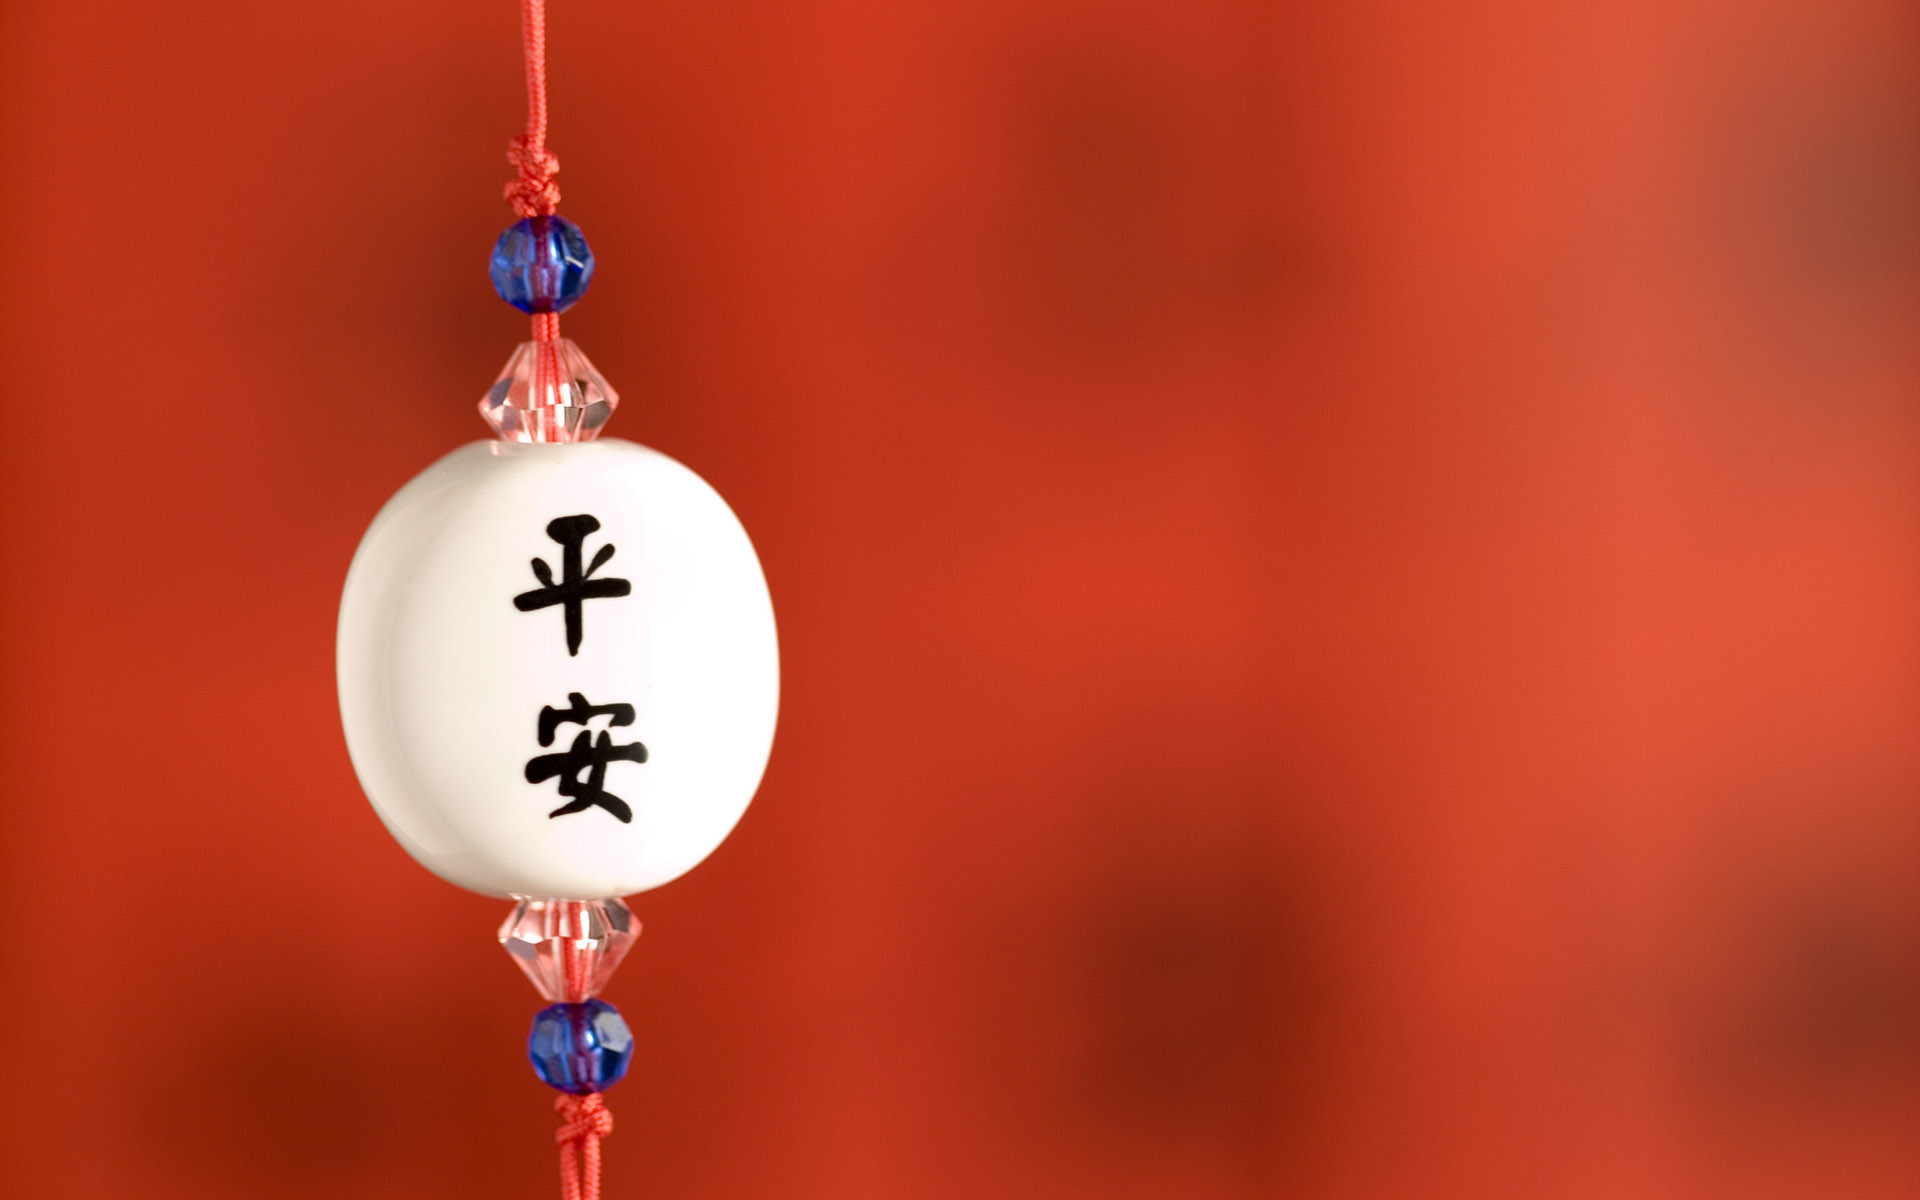 1920x1200 Hanging Lamp Chinese new year Image